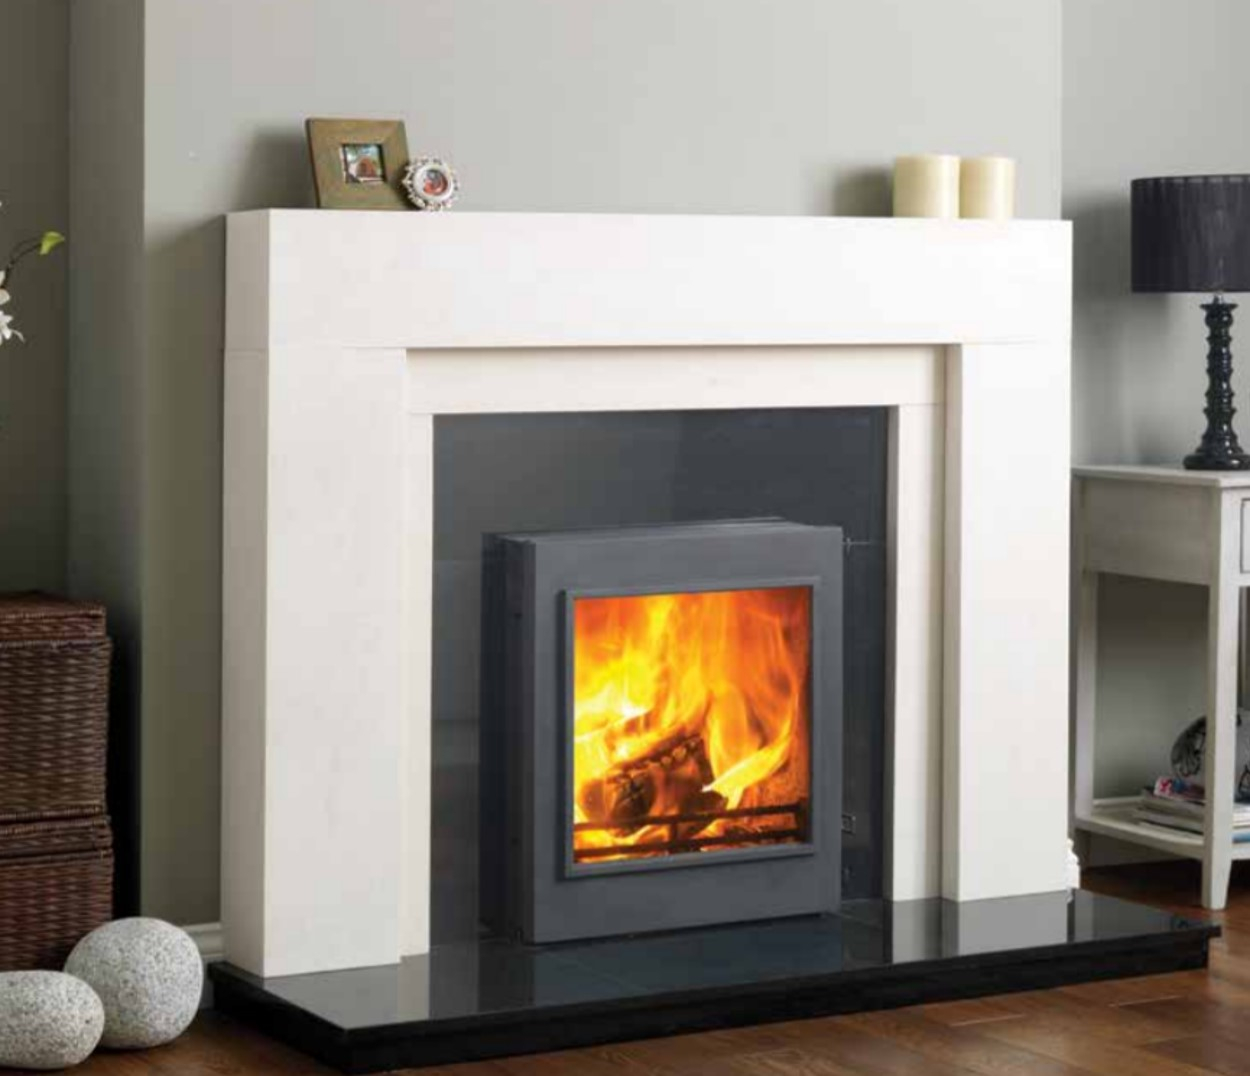 Buying A New Stove Manchester